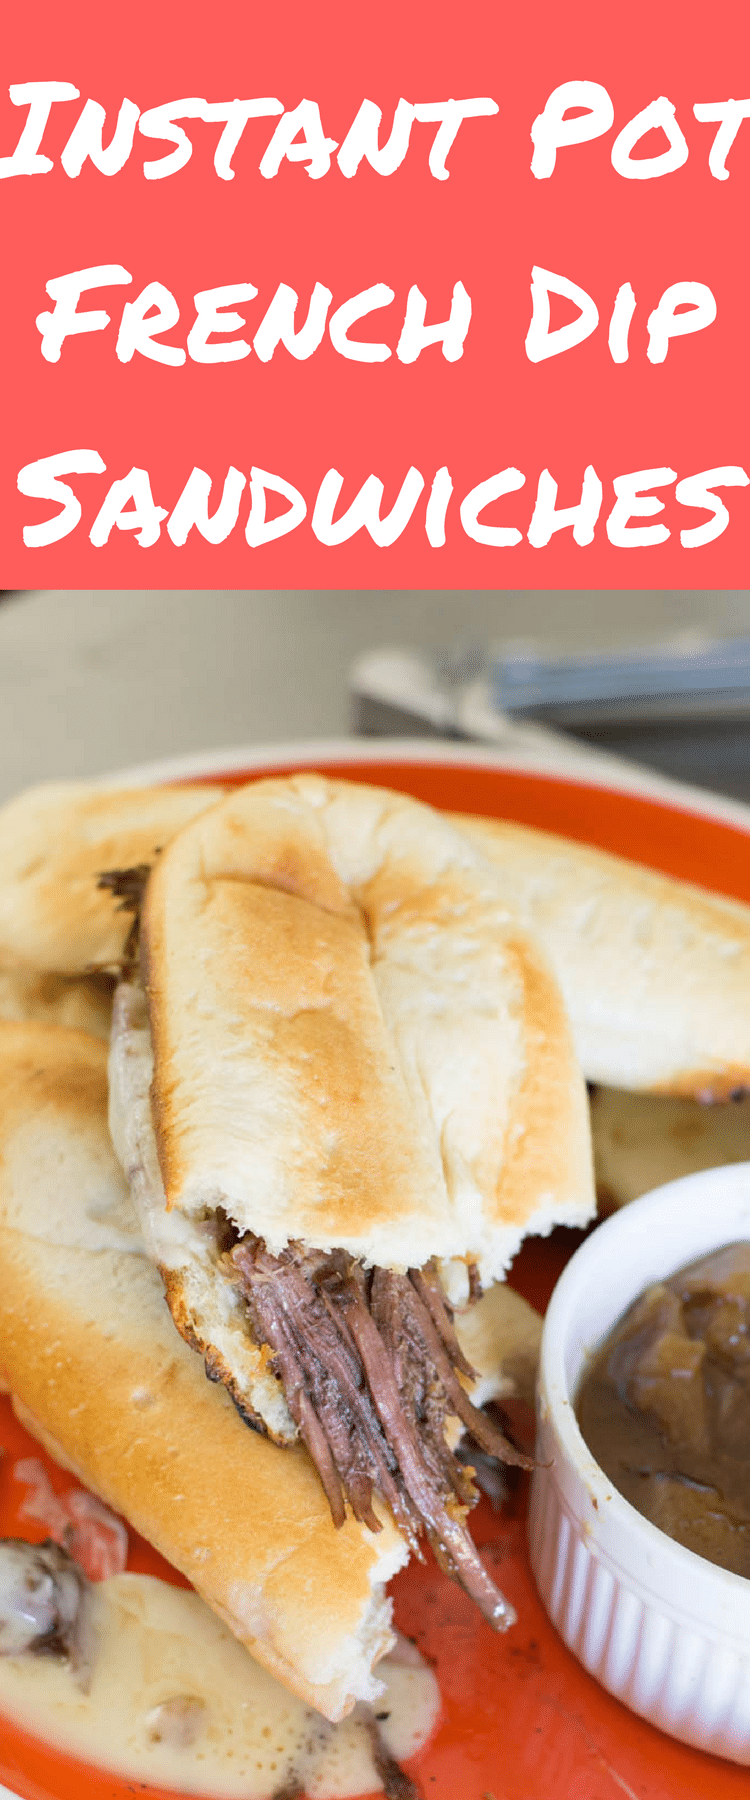 Instant Pot French Dip Sandwiches / French Dip Au Jus / Sandwich via @clarkscondensed